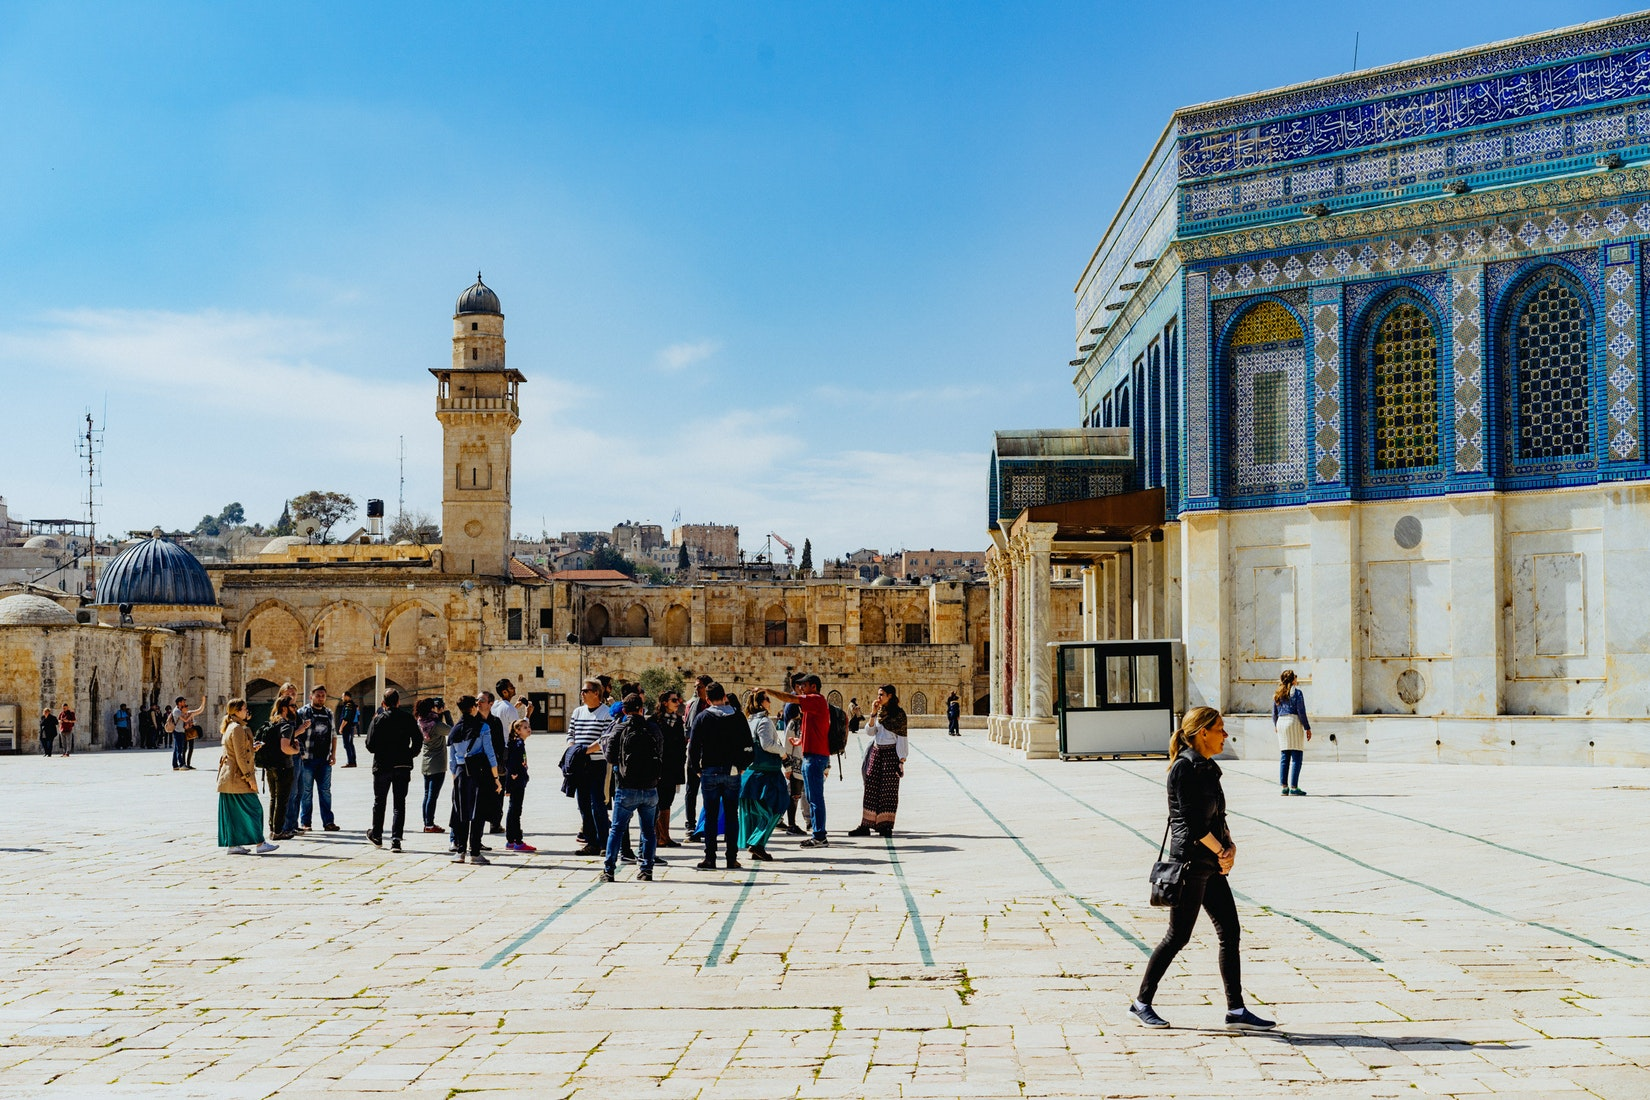 People gathering in the sun at the Dome of the Rock in Jerusalem, Israel